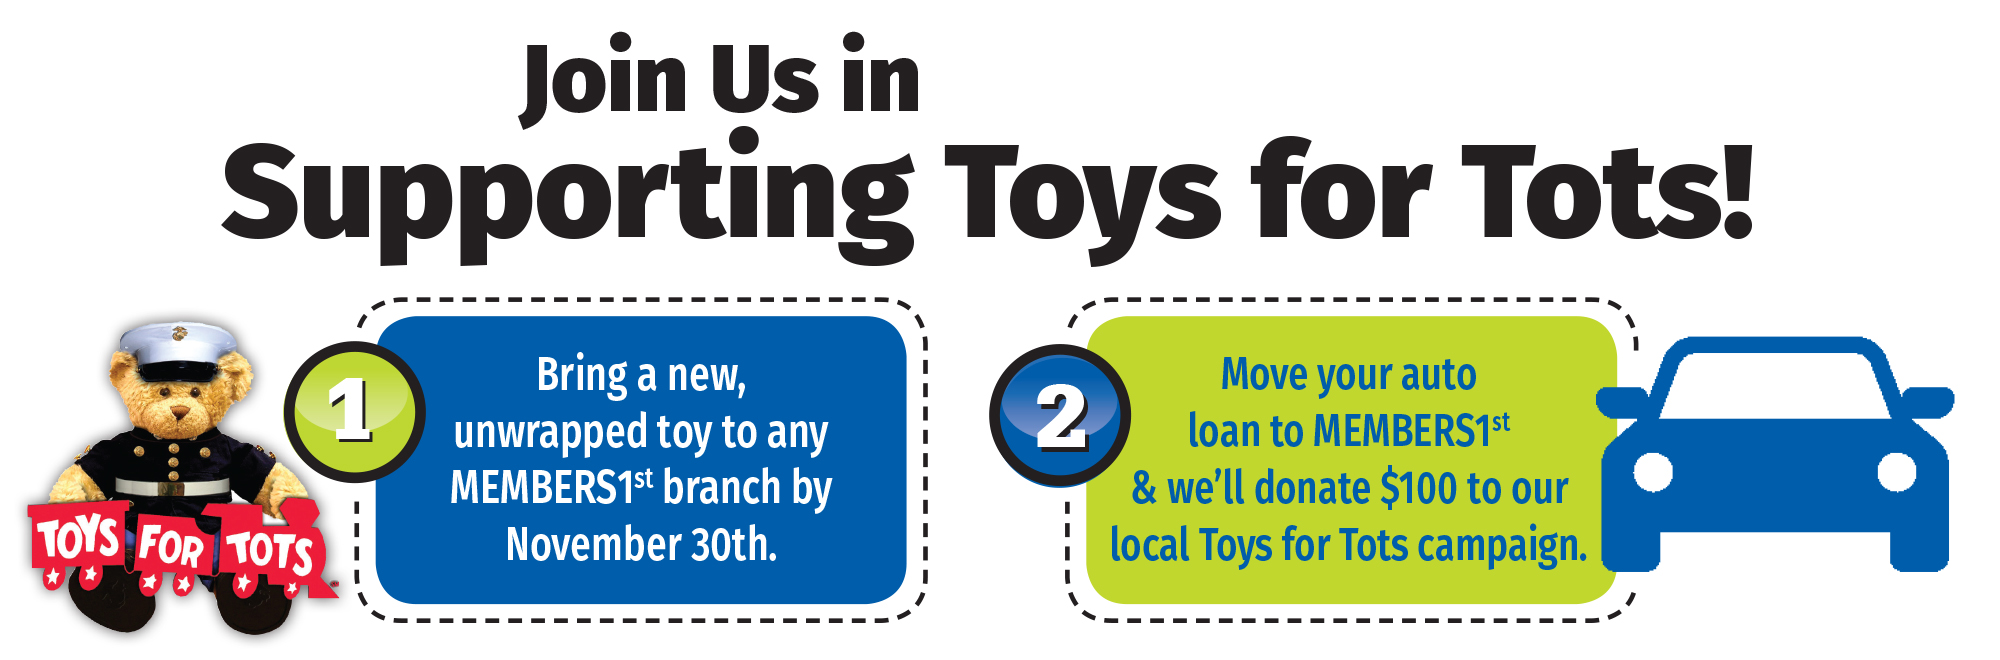 Join us in supporting Toys for Tots! There are 2 ways to participate - click this image to learn more!